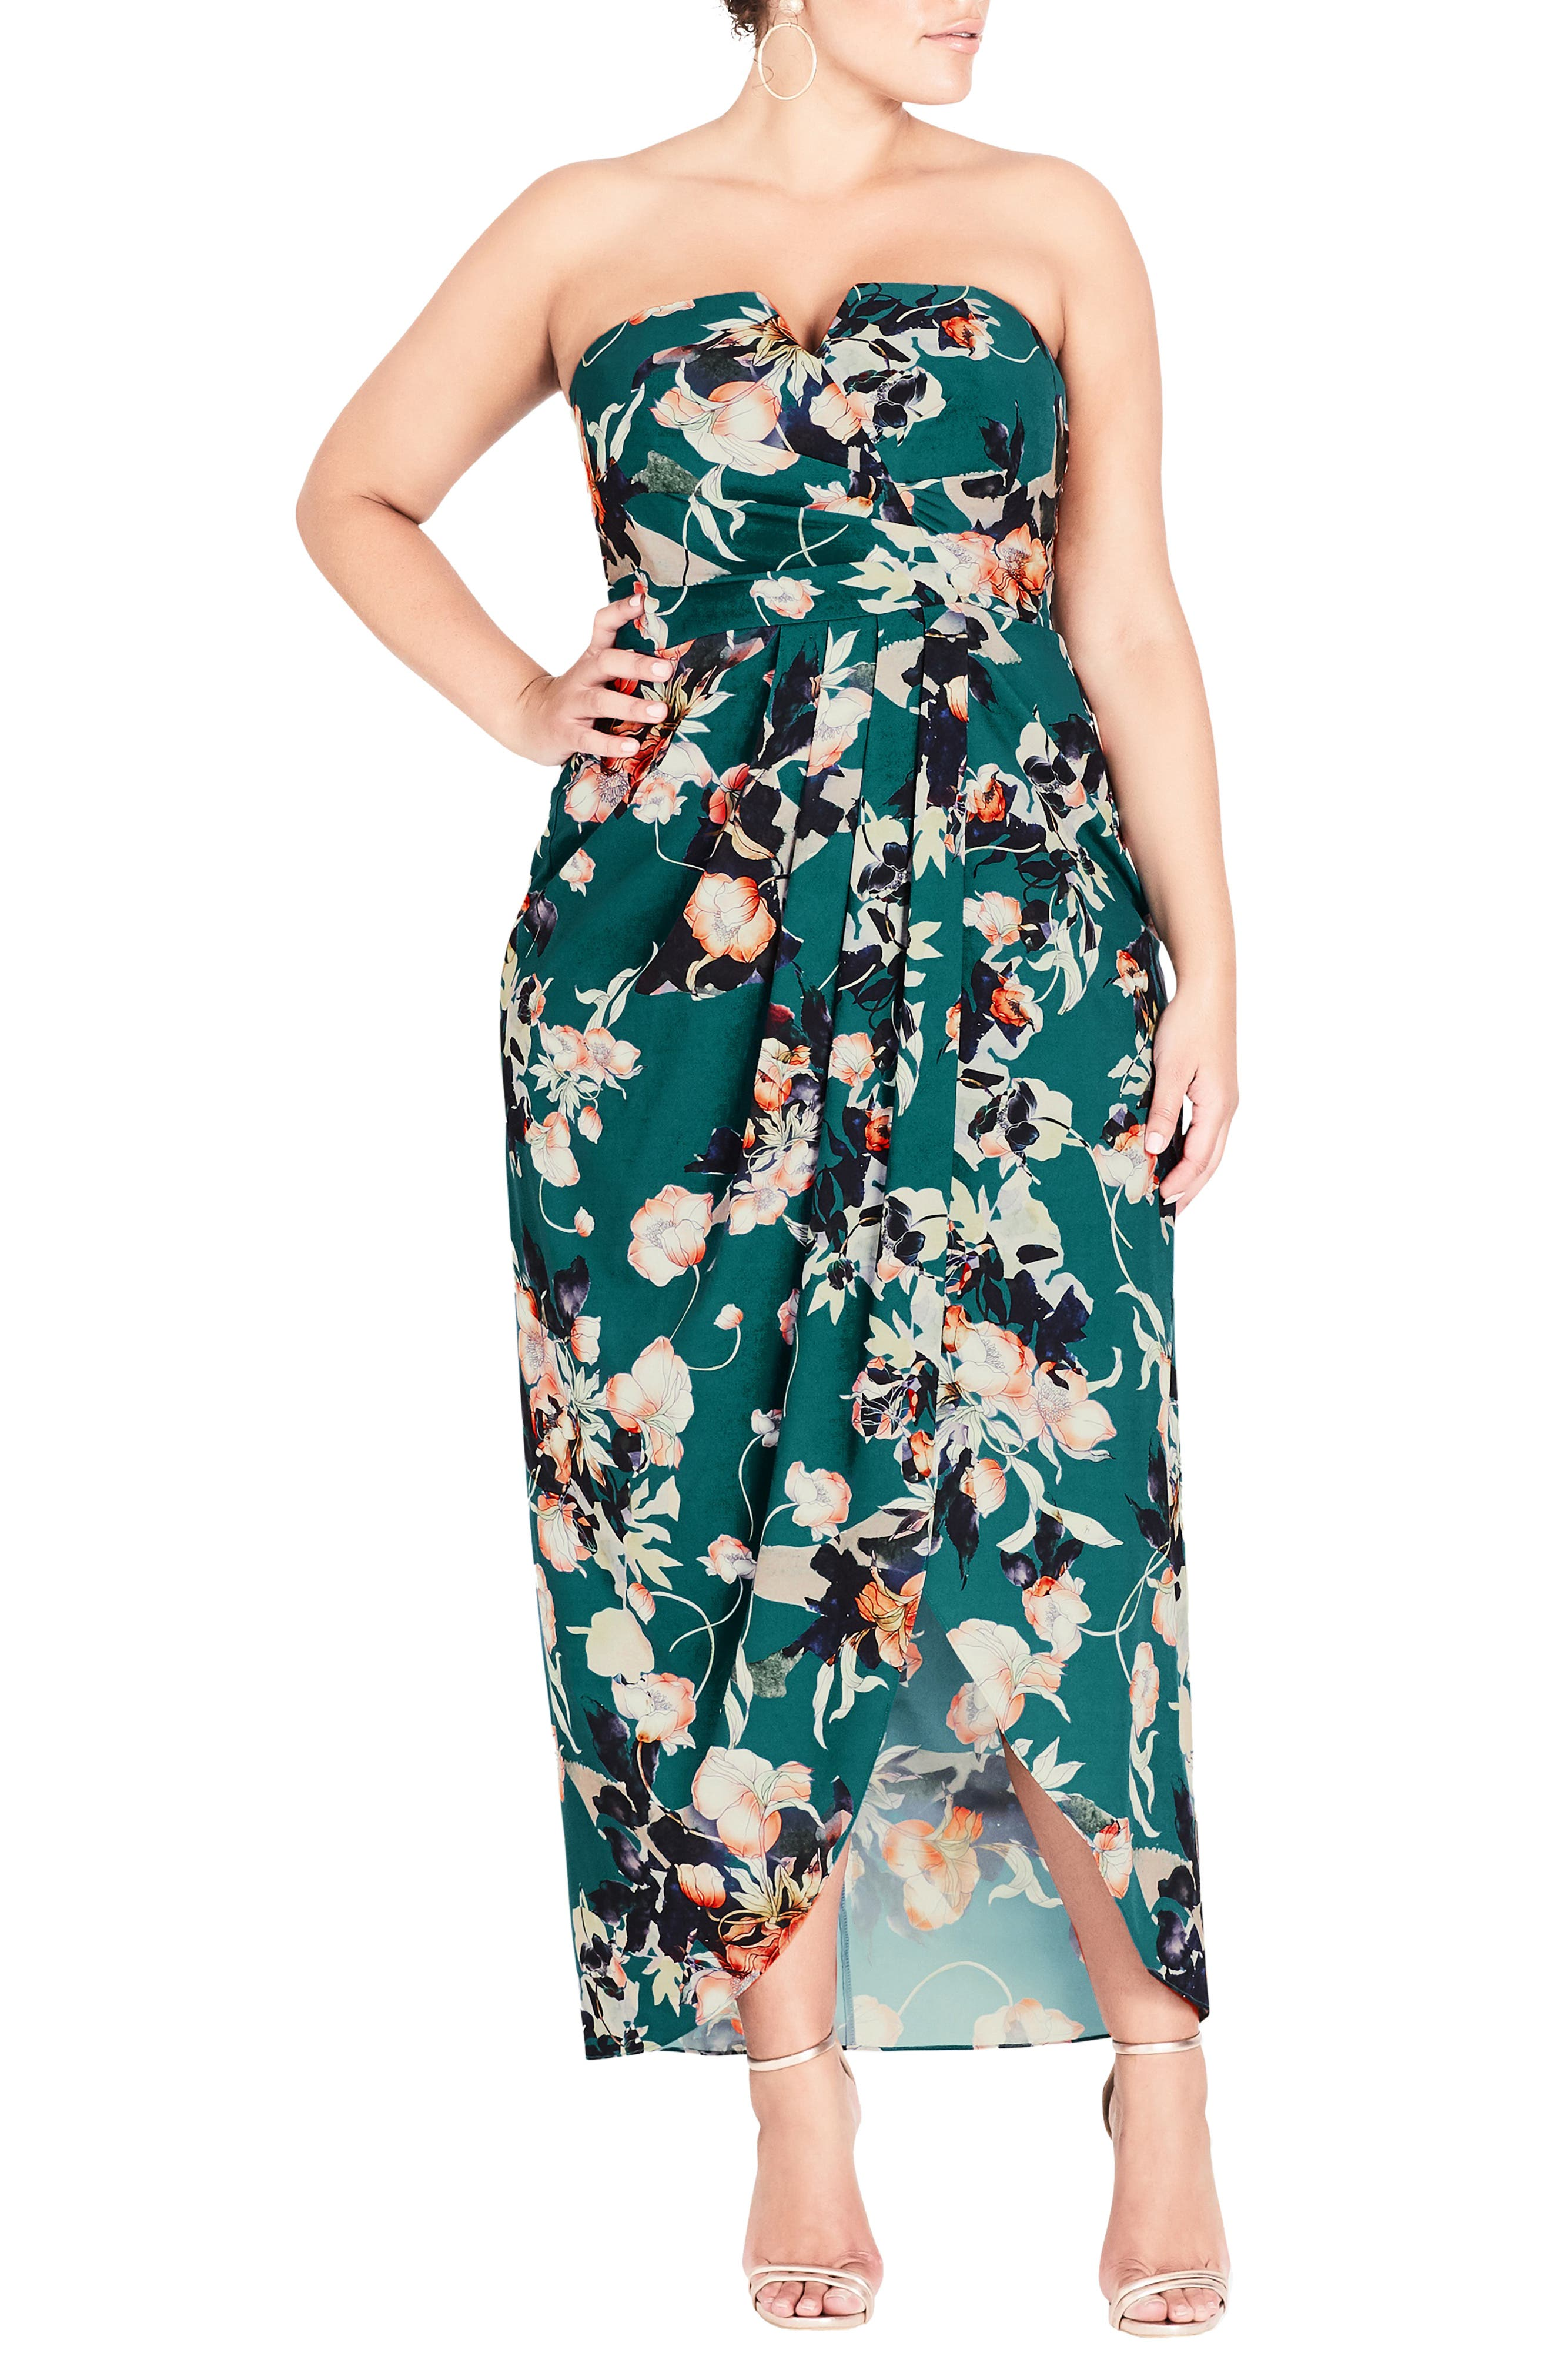 CITY CHIC, Emerald Bloom Strapless Maxi Dress, Main thumbnail 1, color, 302